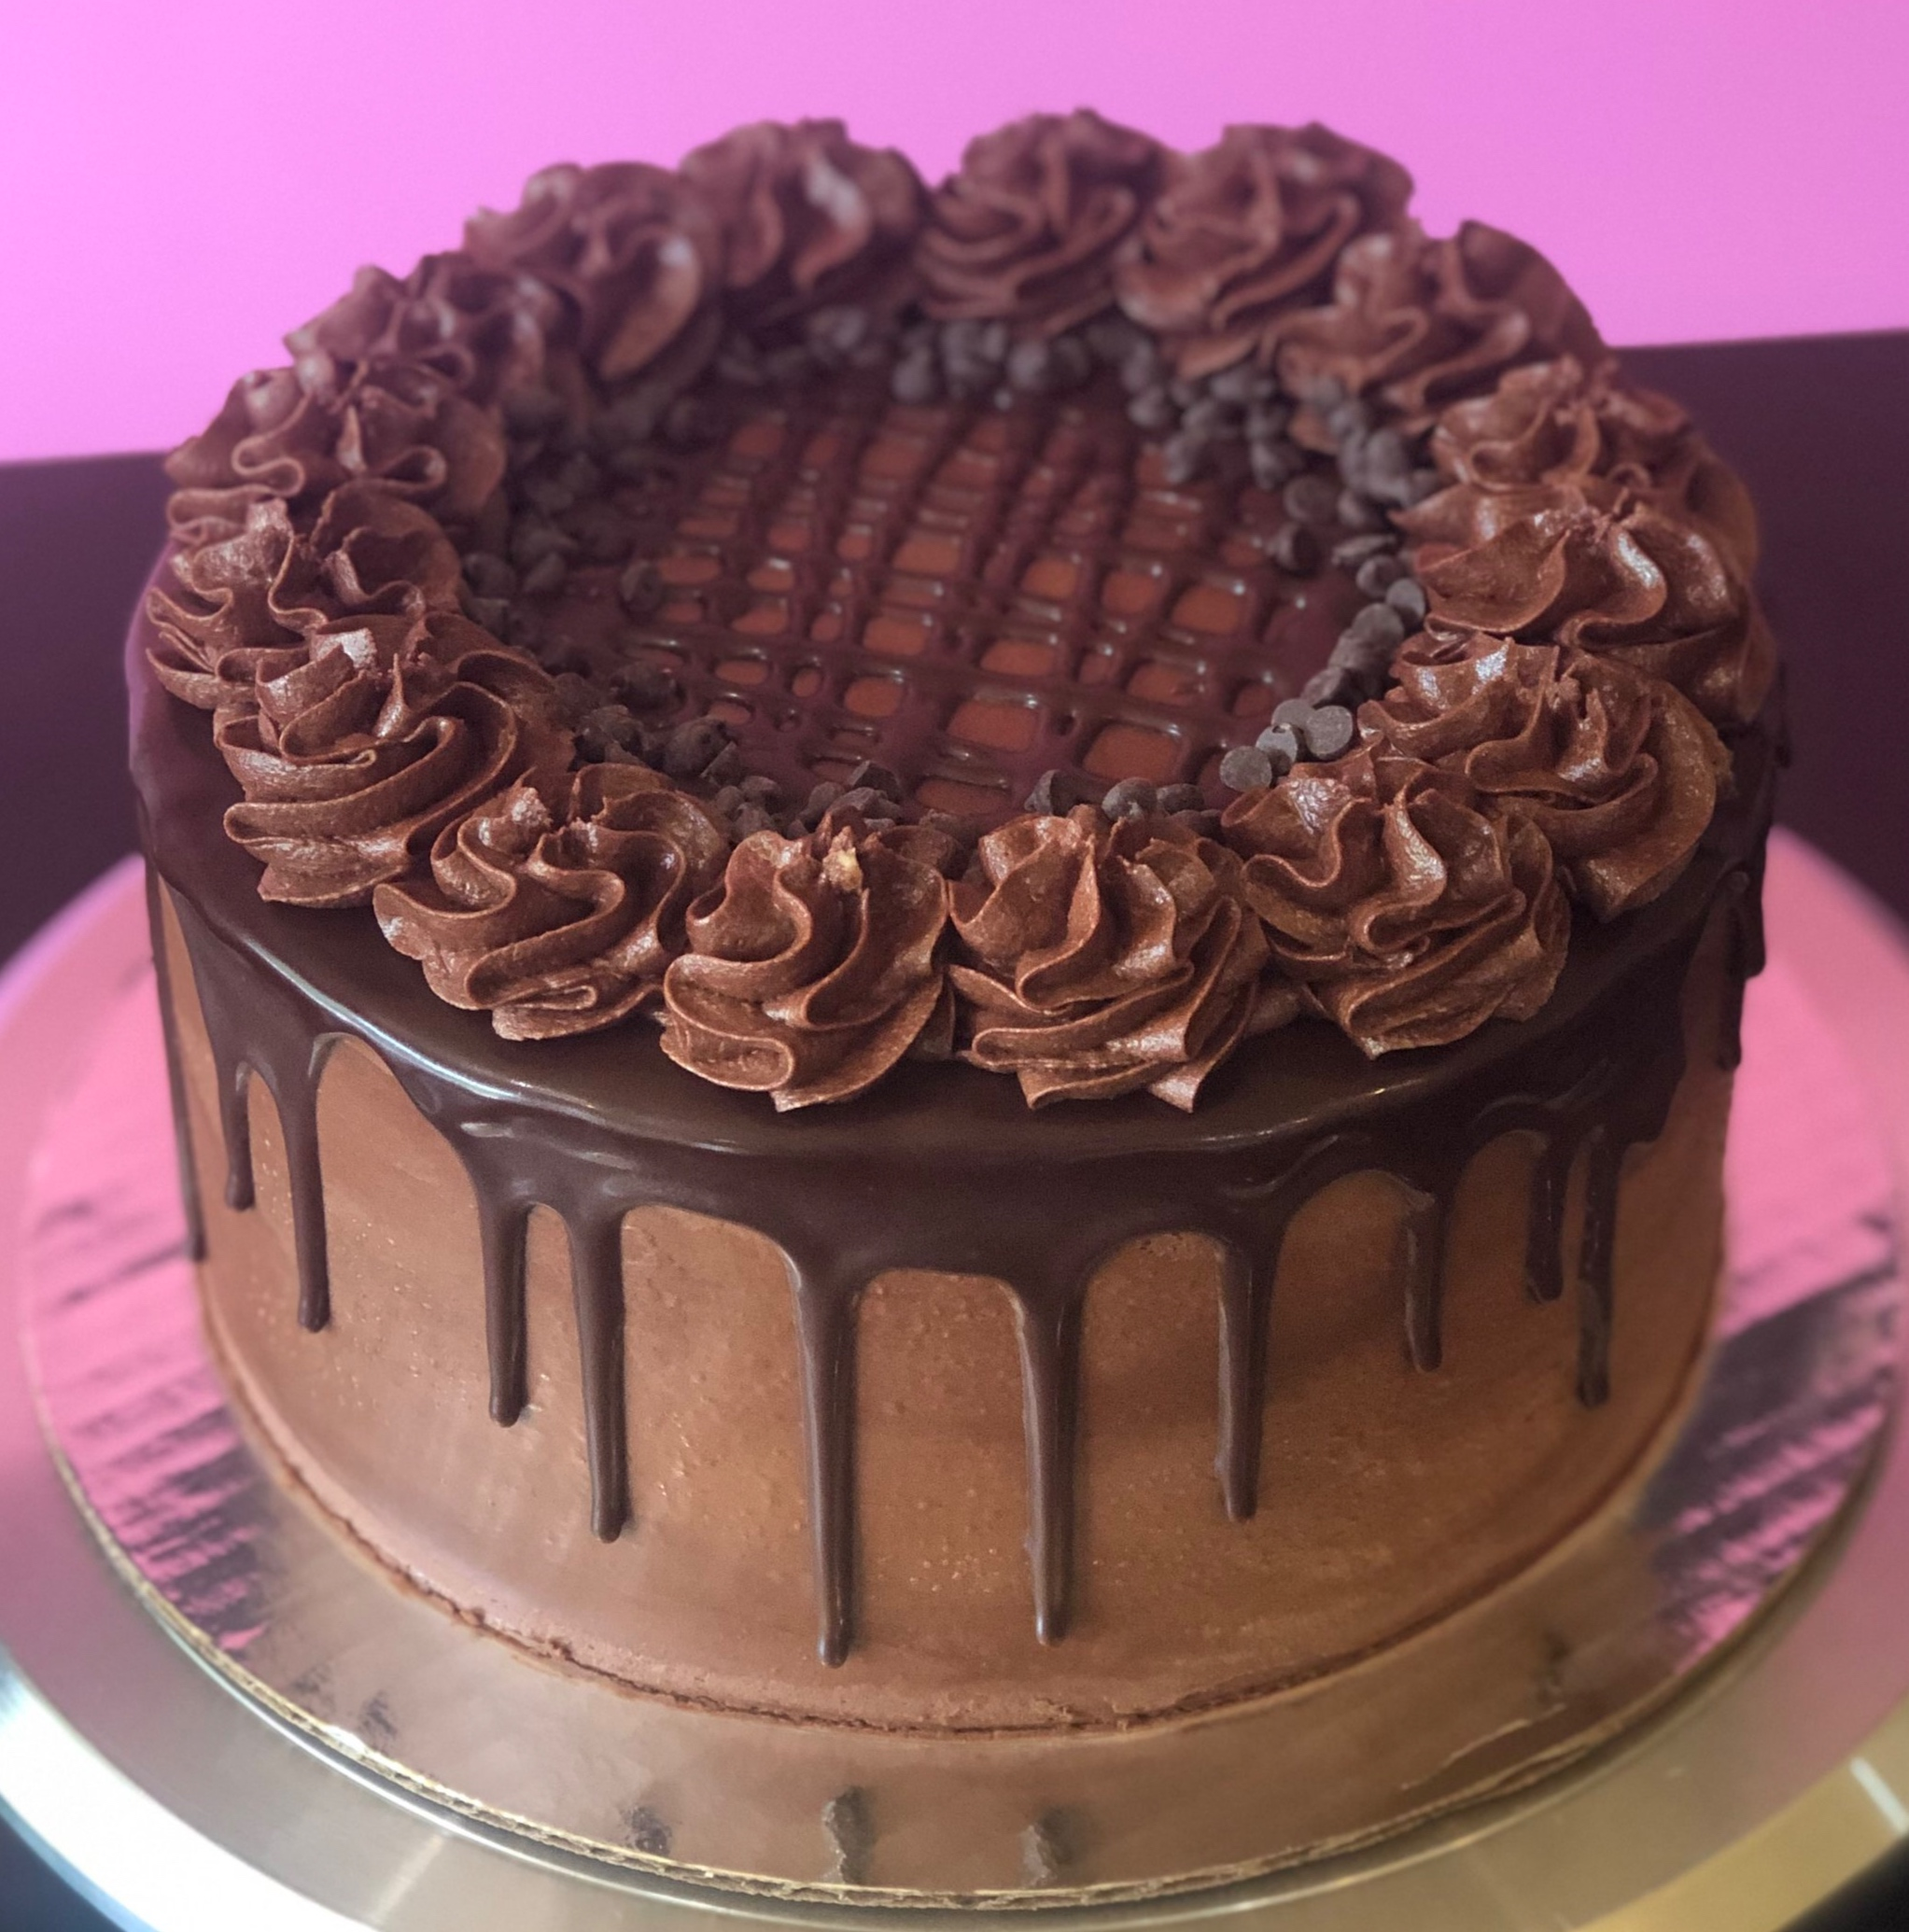 Death By Chocolate - Chocolate Cake, Filled with Ganache, Topped with Chocolate Frosting, Ganache & Chocolate Chips